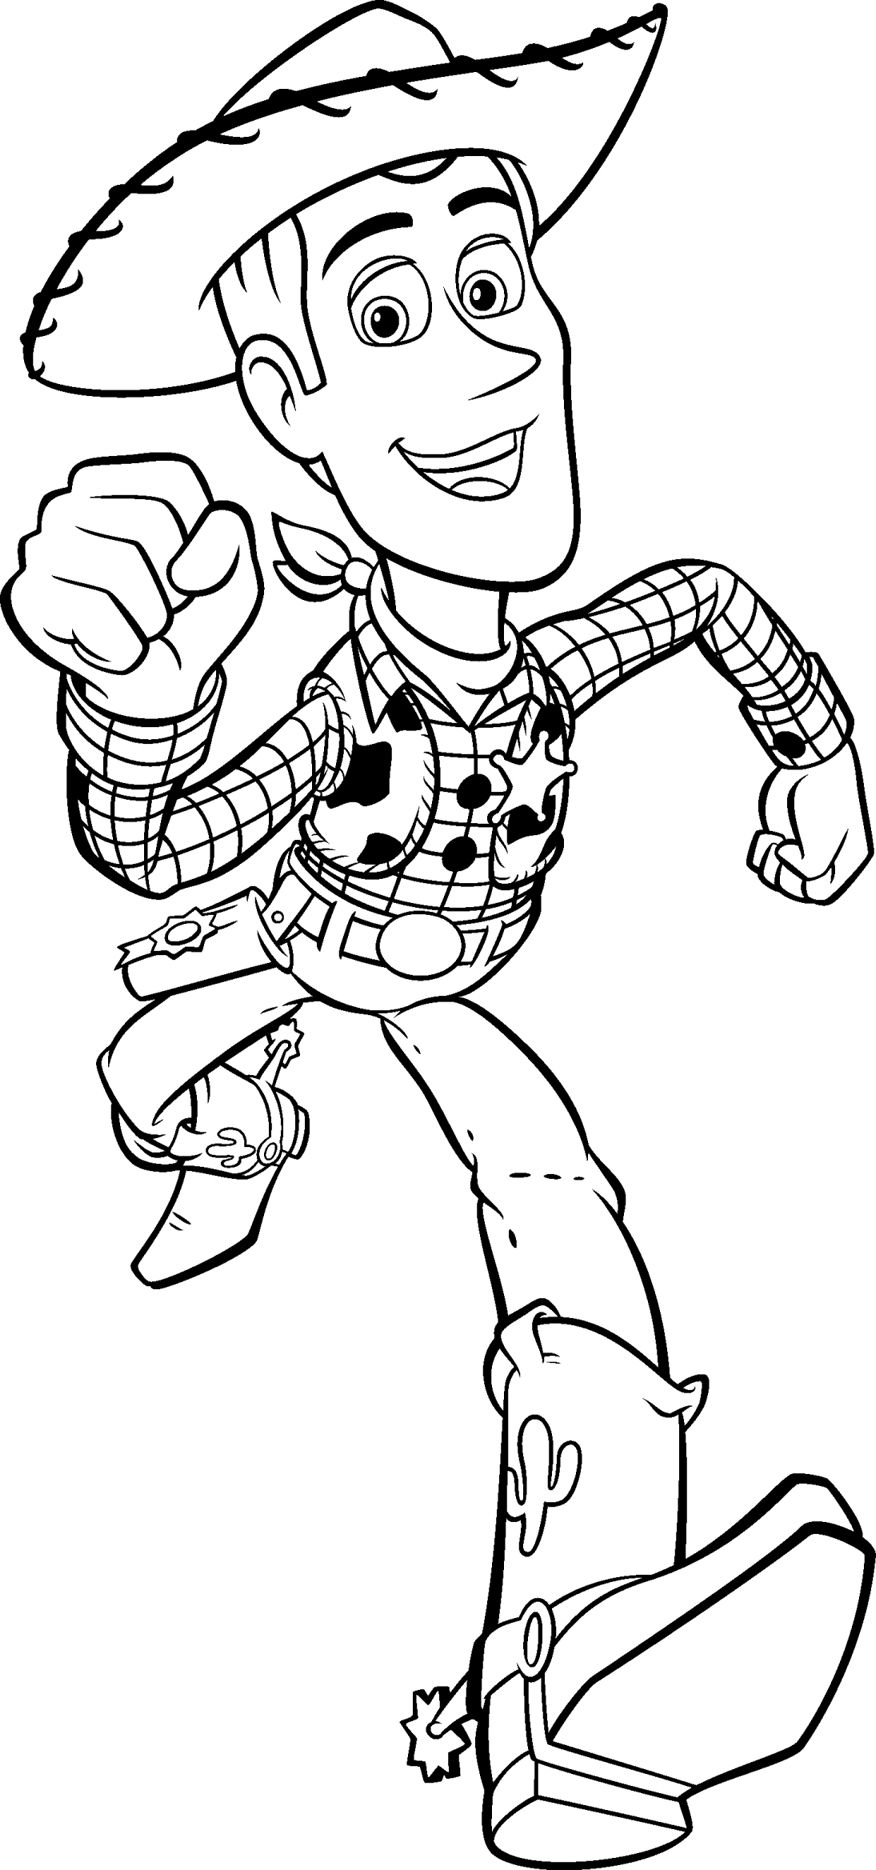 Coloring Pages Disney - Dr Odd | Disney Coloring Pages